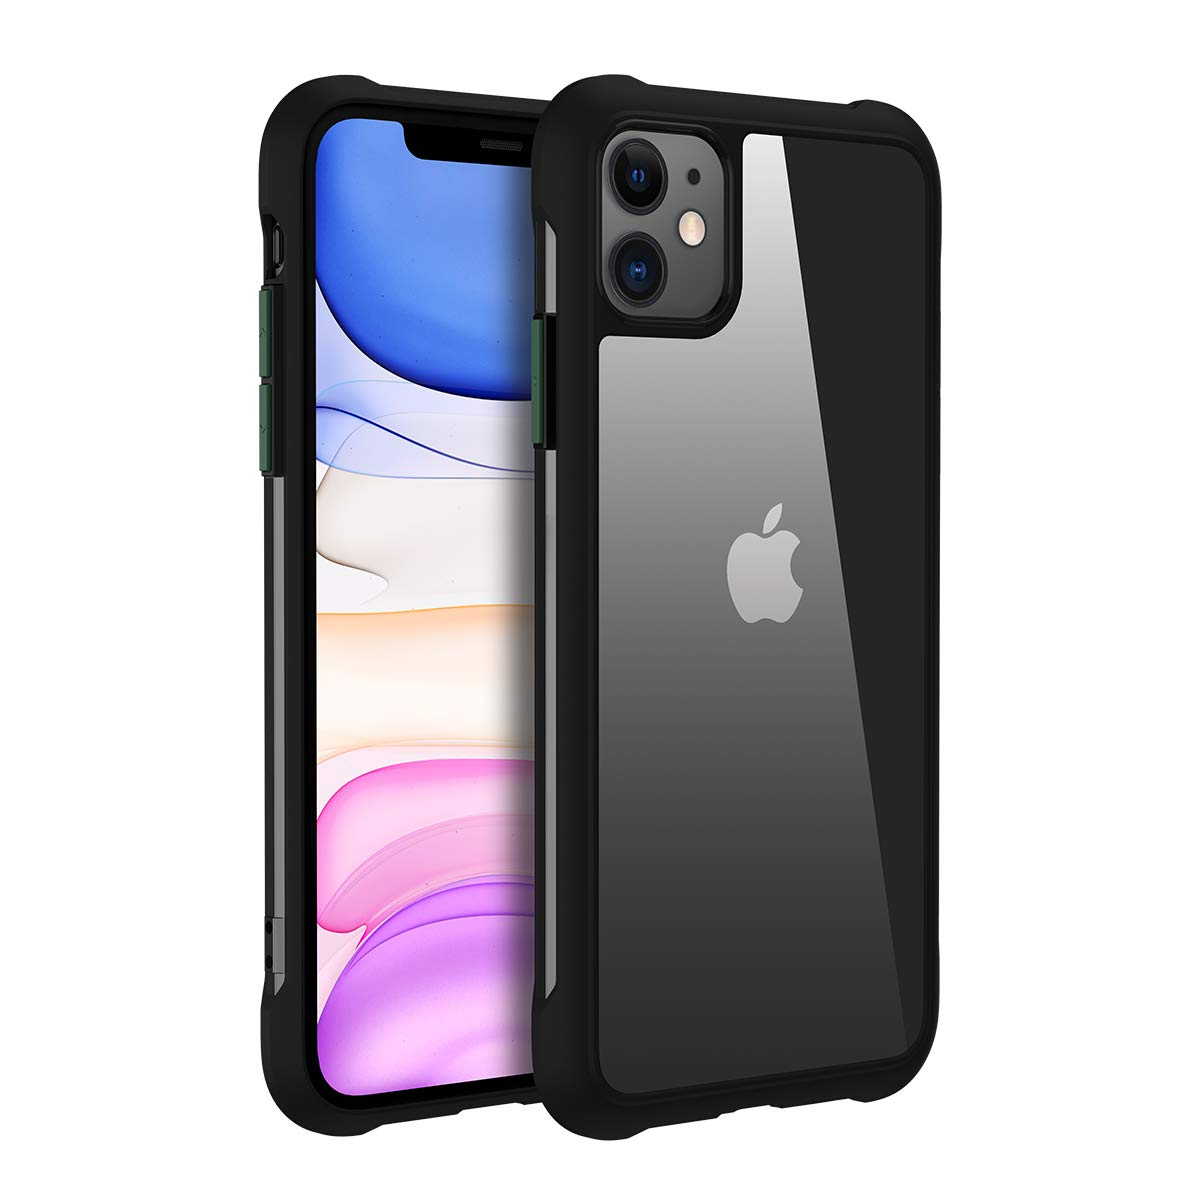 joyroom Compatible with iPhone 11 Case,Anti-Drop Hybrid Cases for iPhone 11,6.1 inch Clear PC Back Cover Black